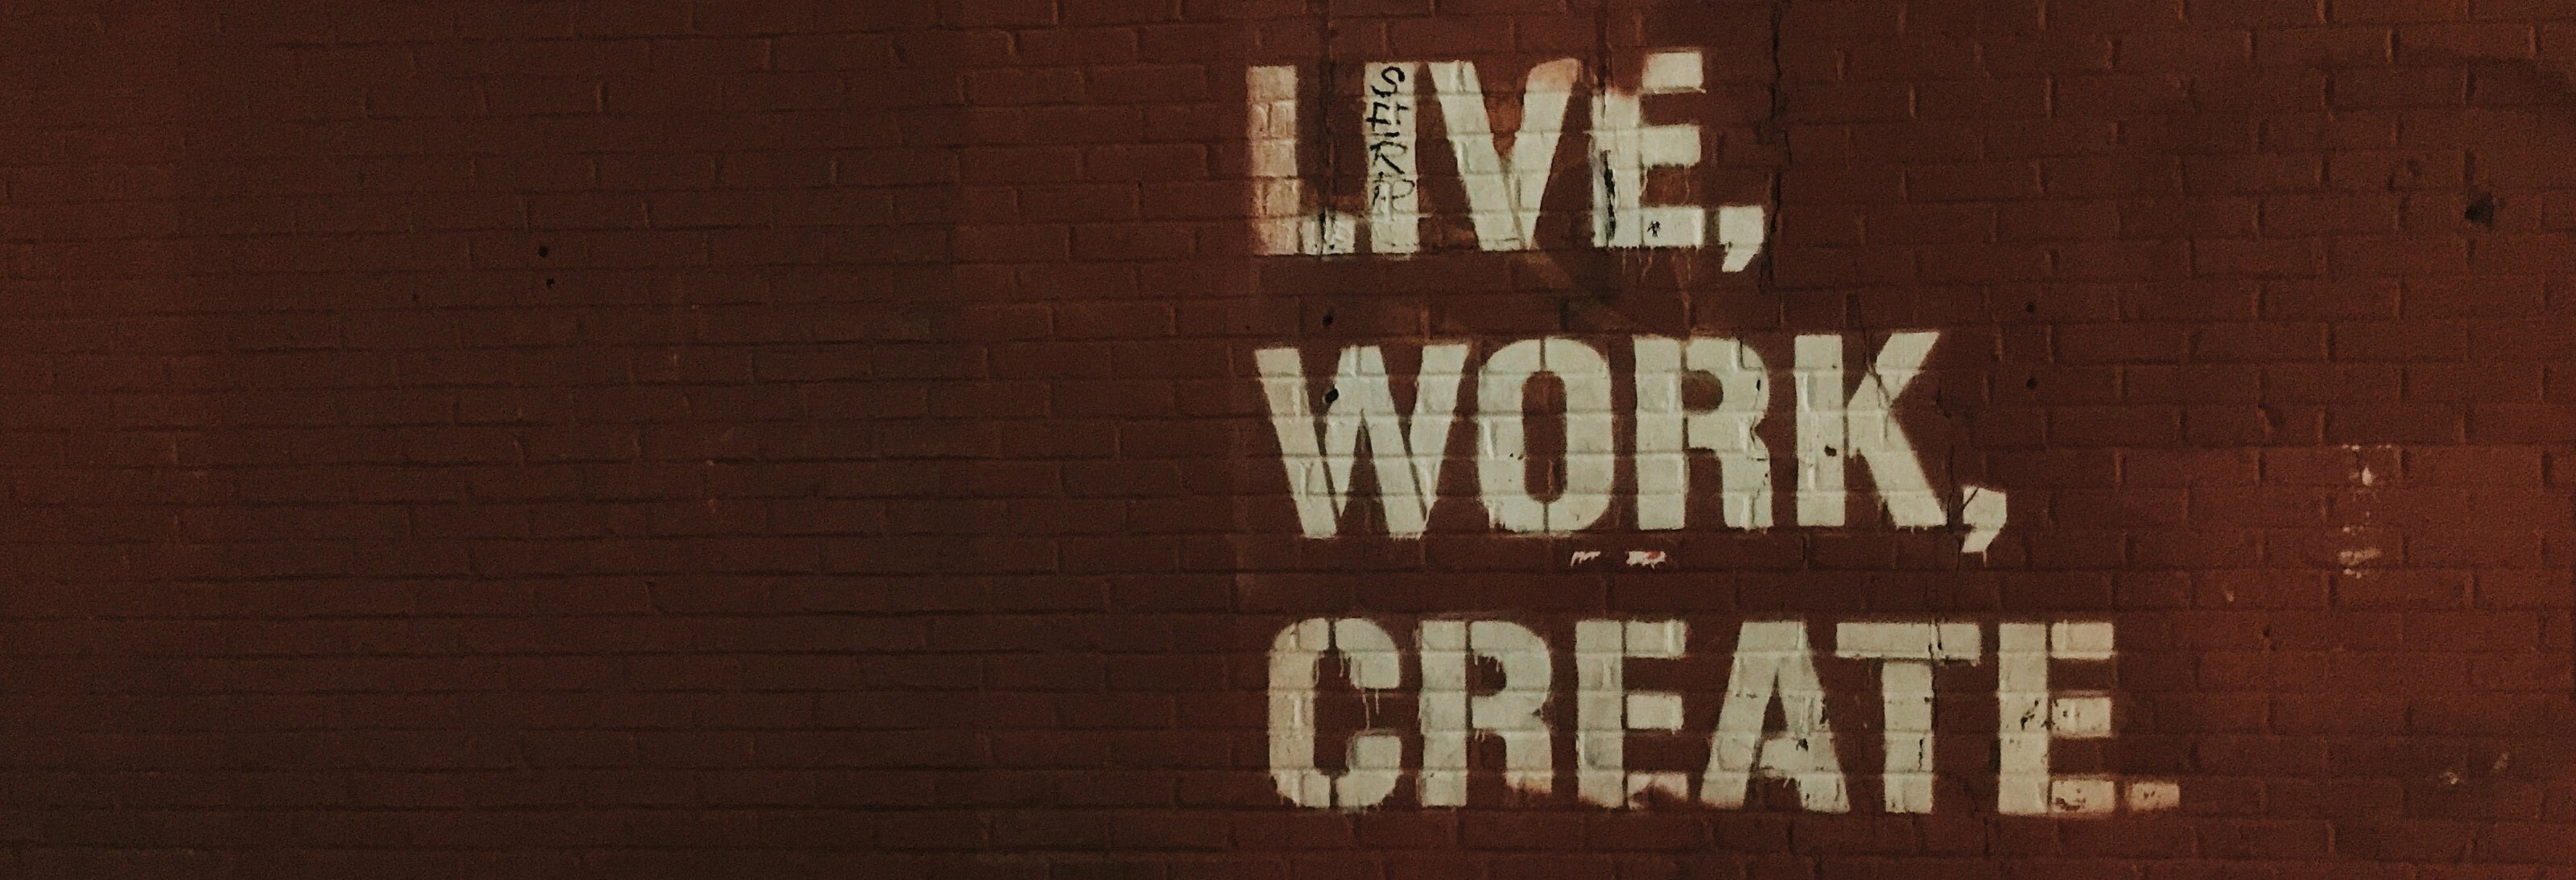 The benefits of blogging live work create image